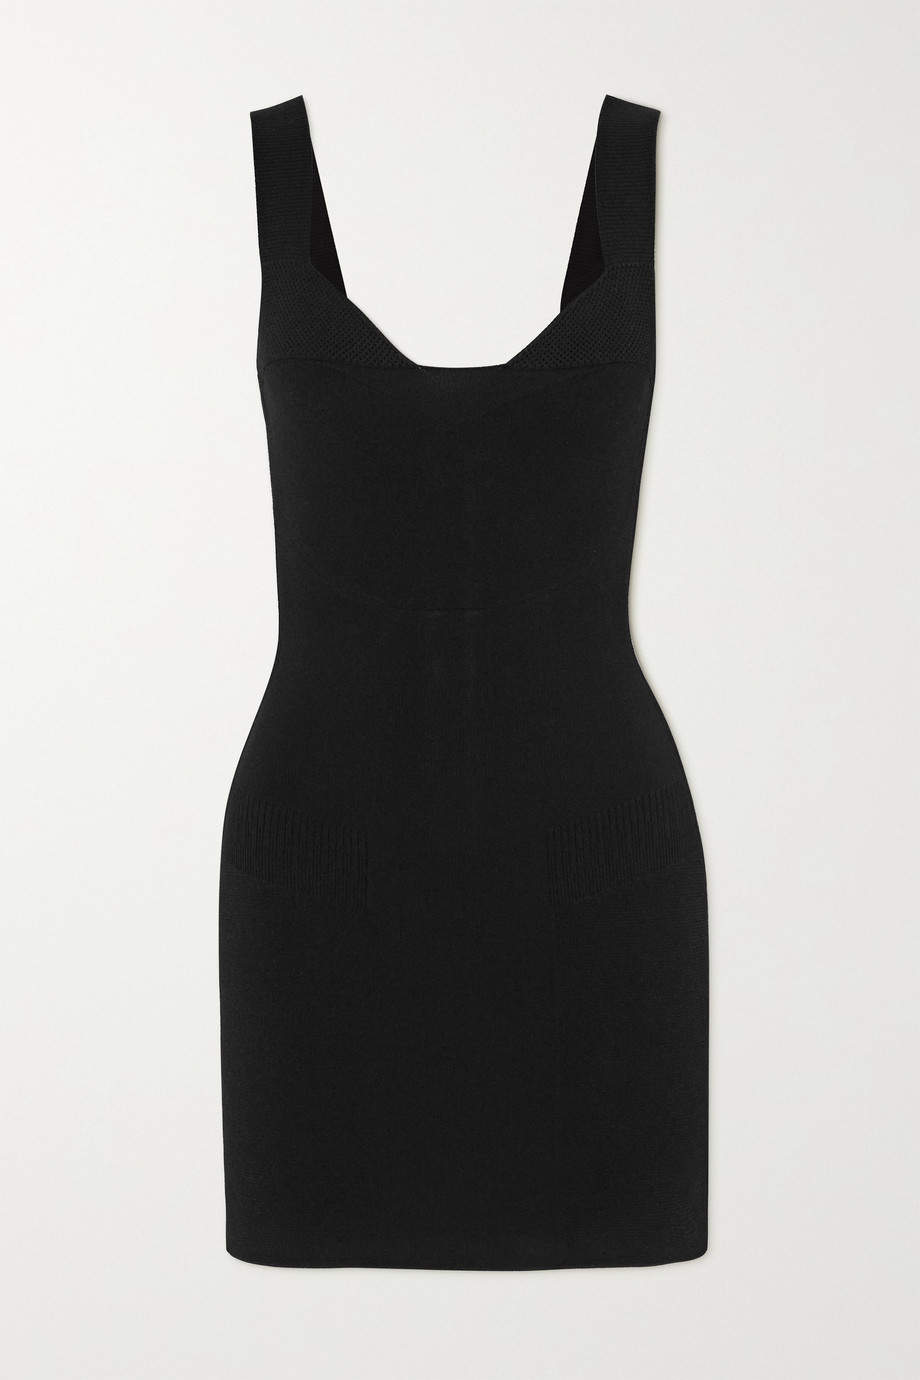 AZ FACTORY MyBody stretch-knit mini dress